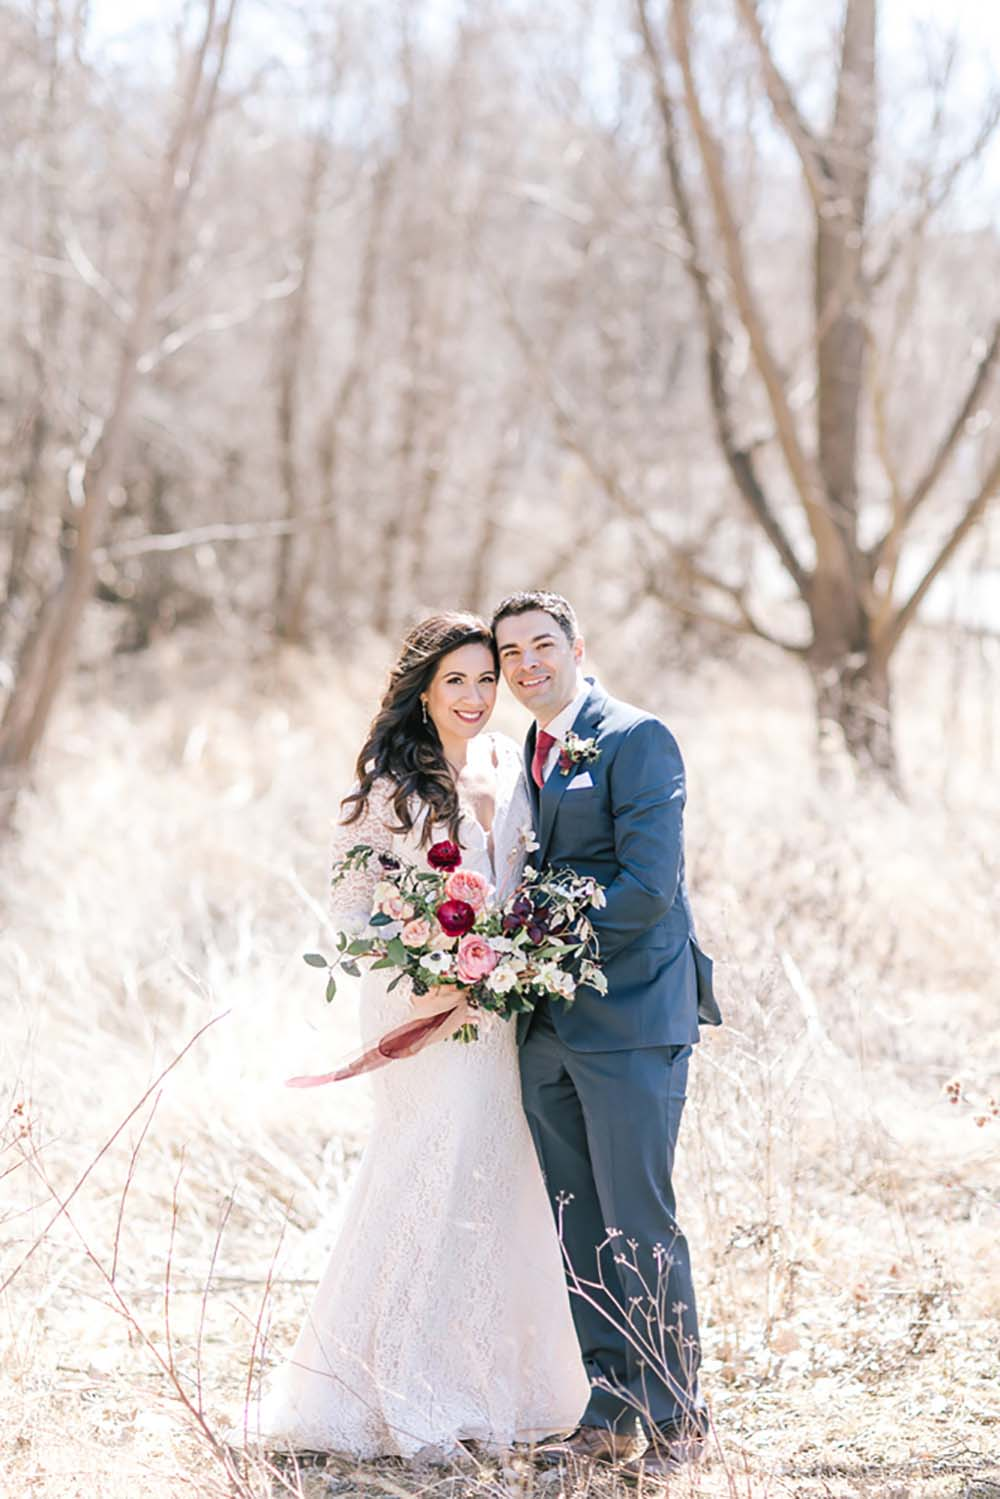 A Rustic Glam Wedding in Vaughan, Ontario - Couple